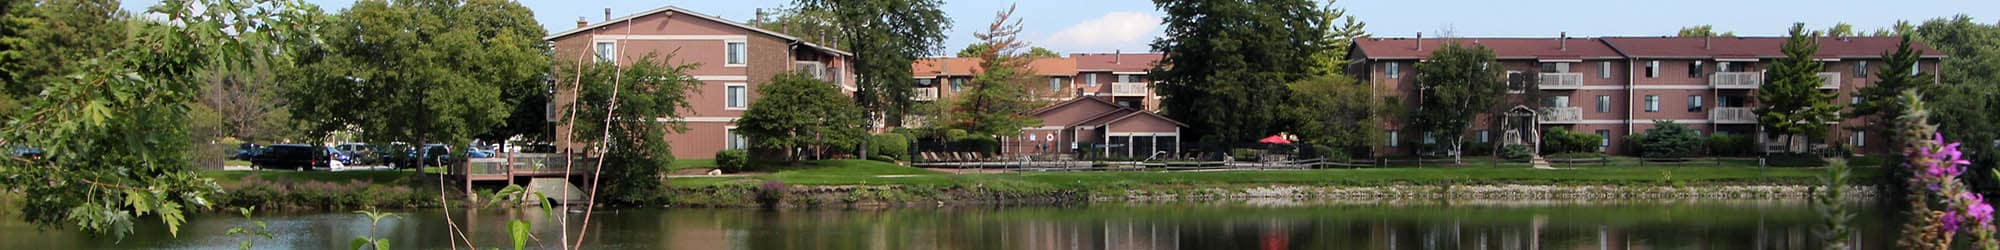 Amenities at Lakeside Apartments